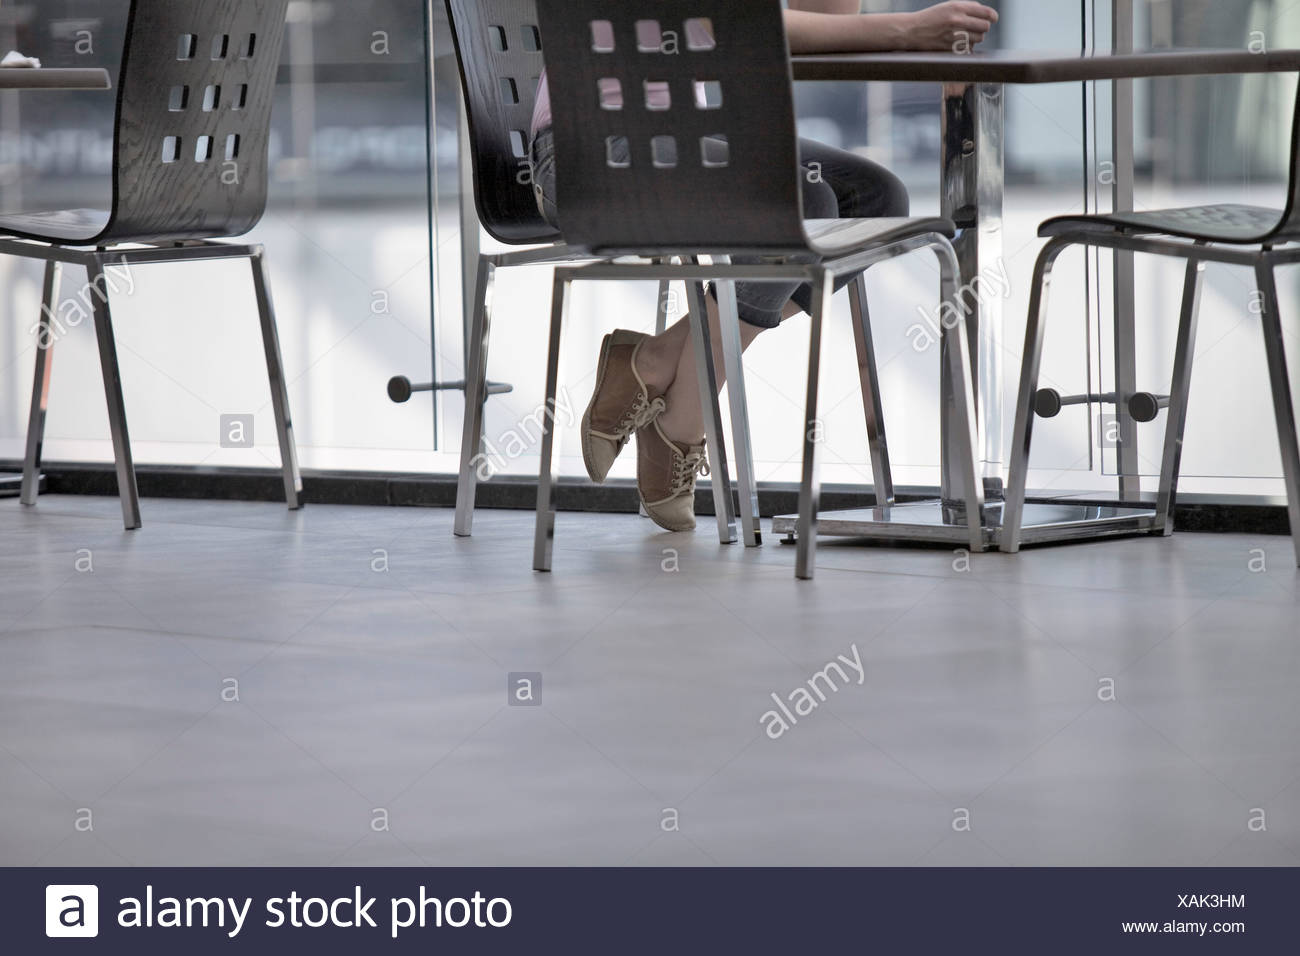 detail of young woman sitting in canteen - Stock Image